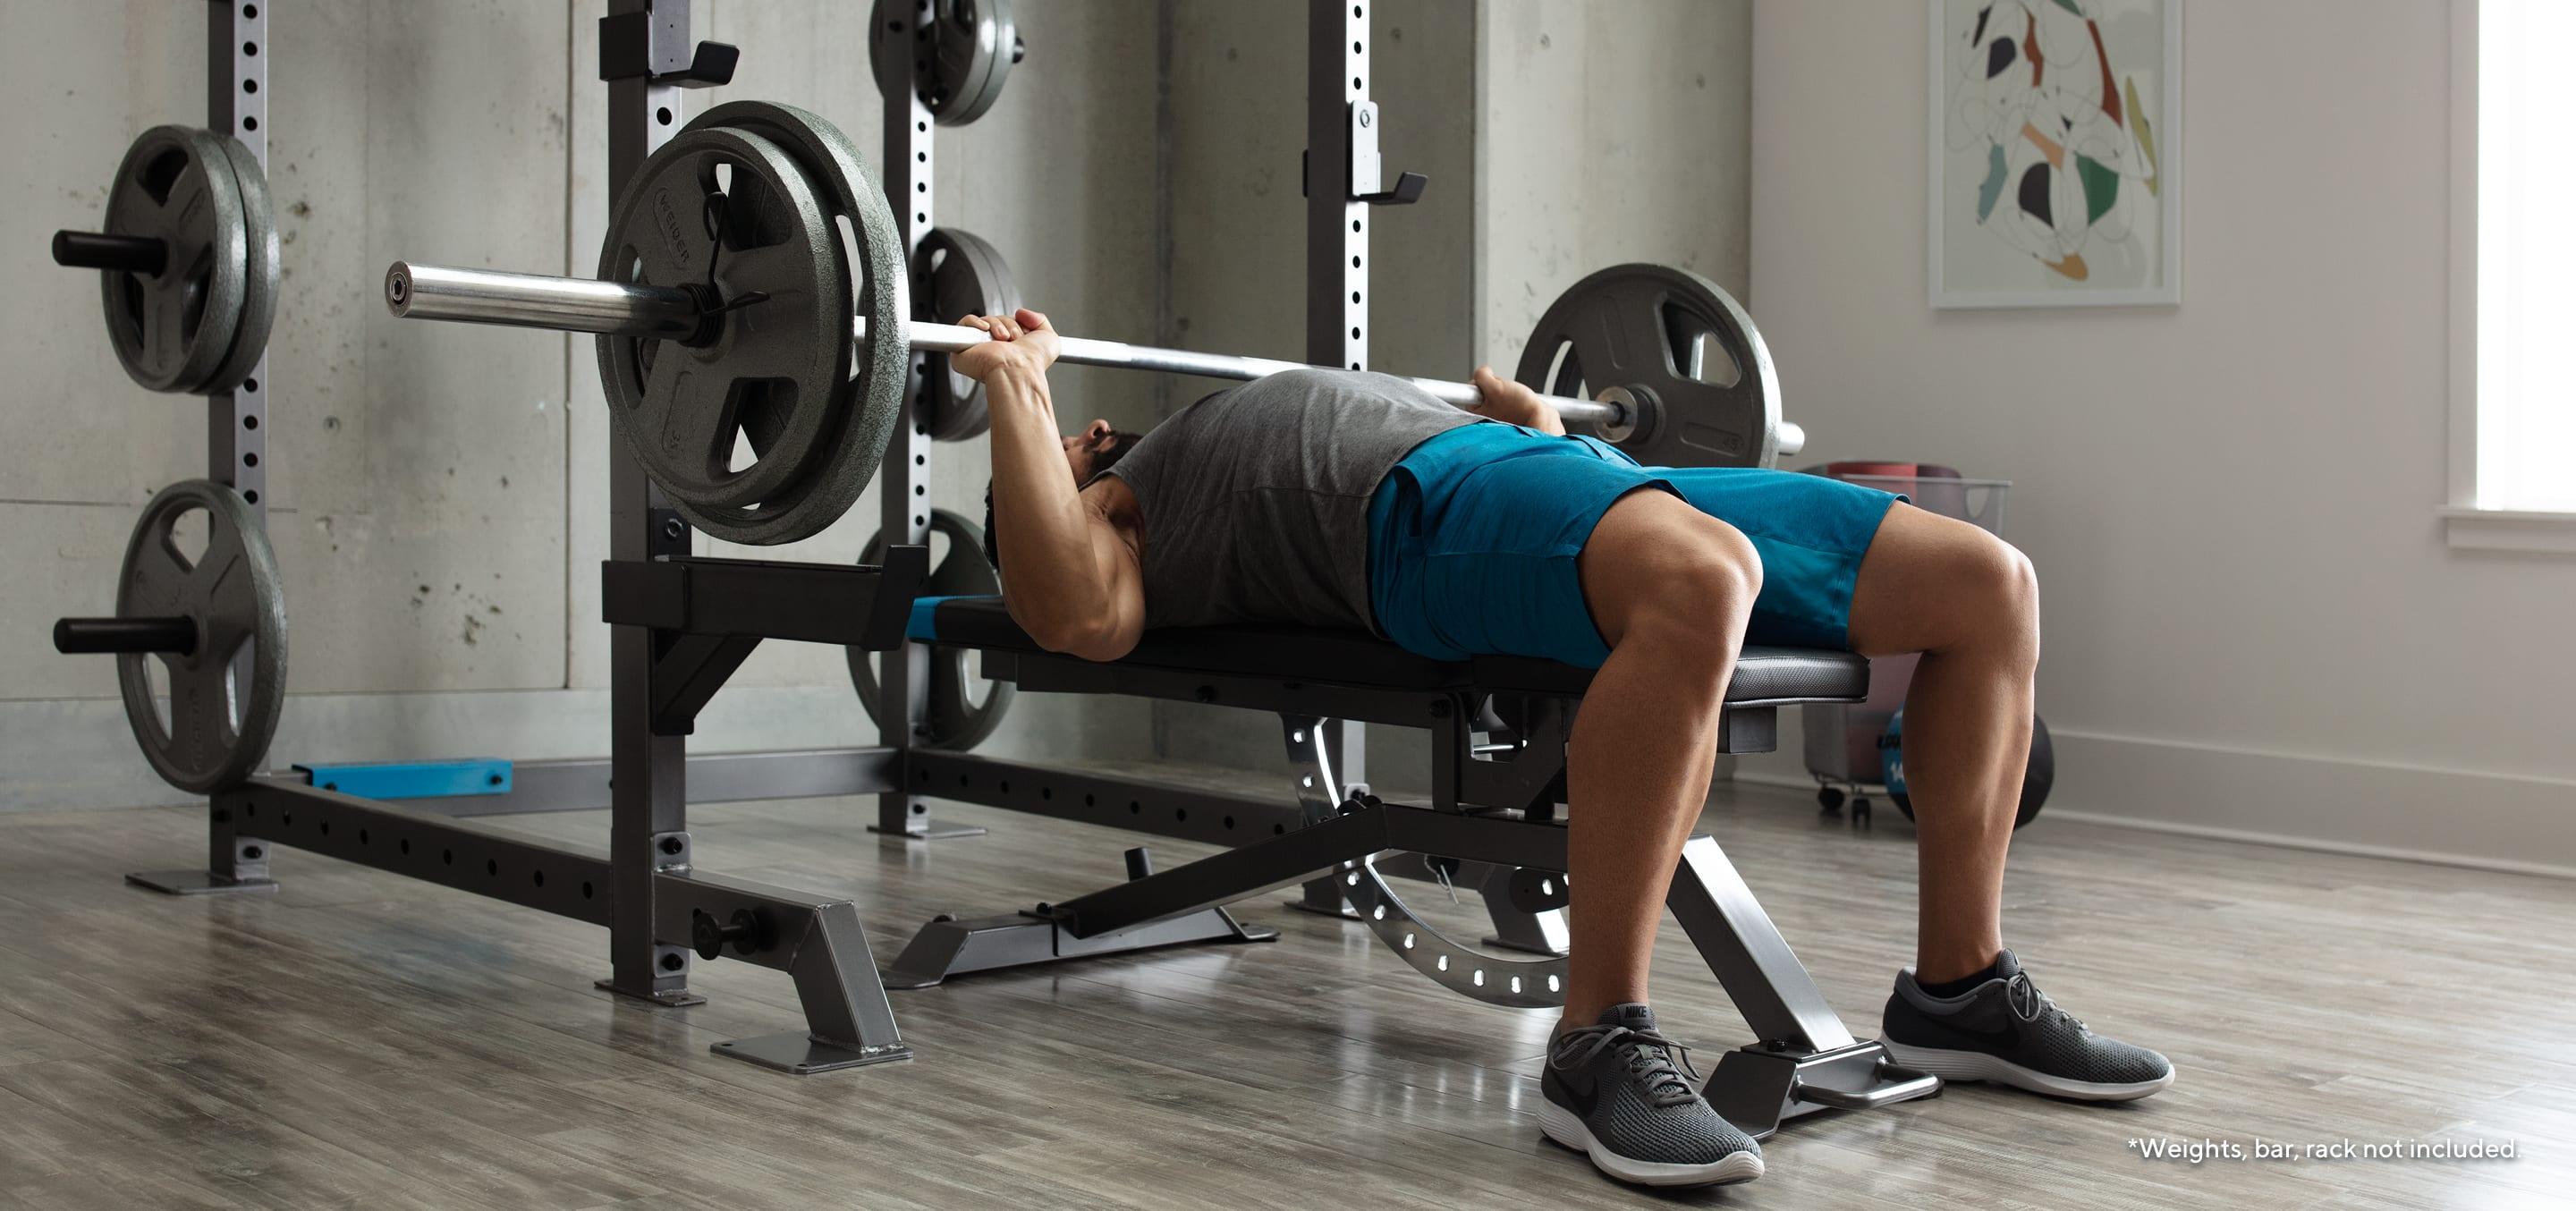 Man doing a bench press (weight, bar, and rack not included).